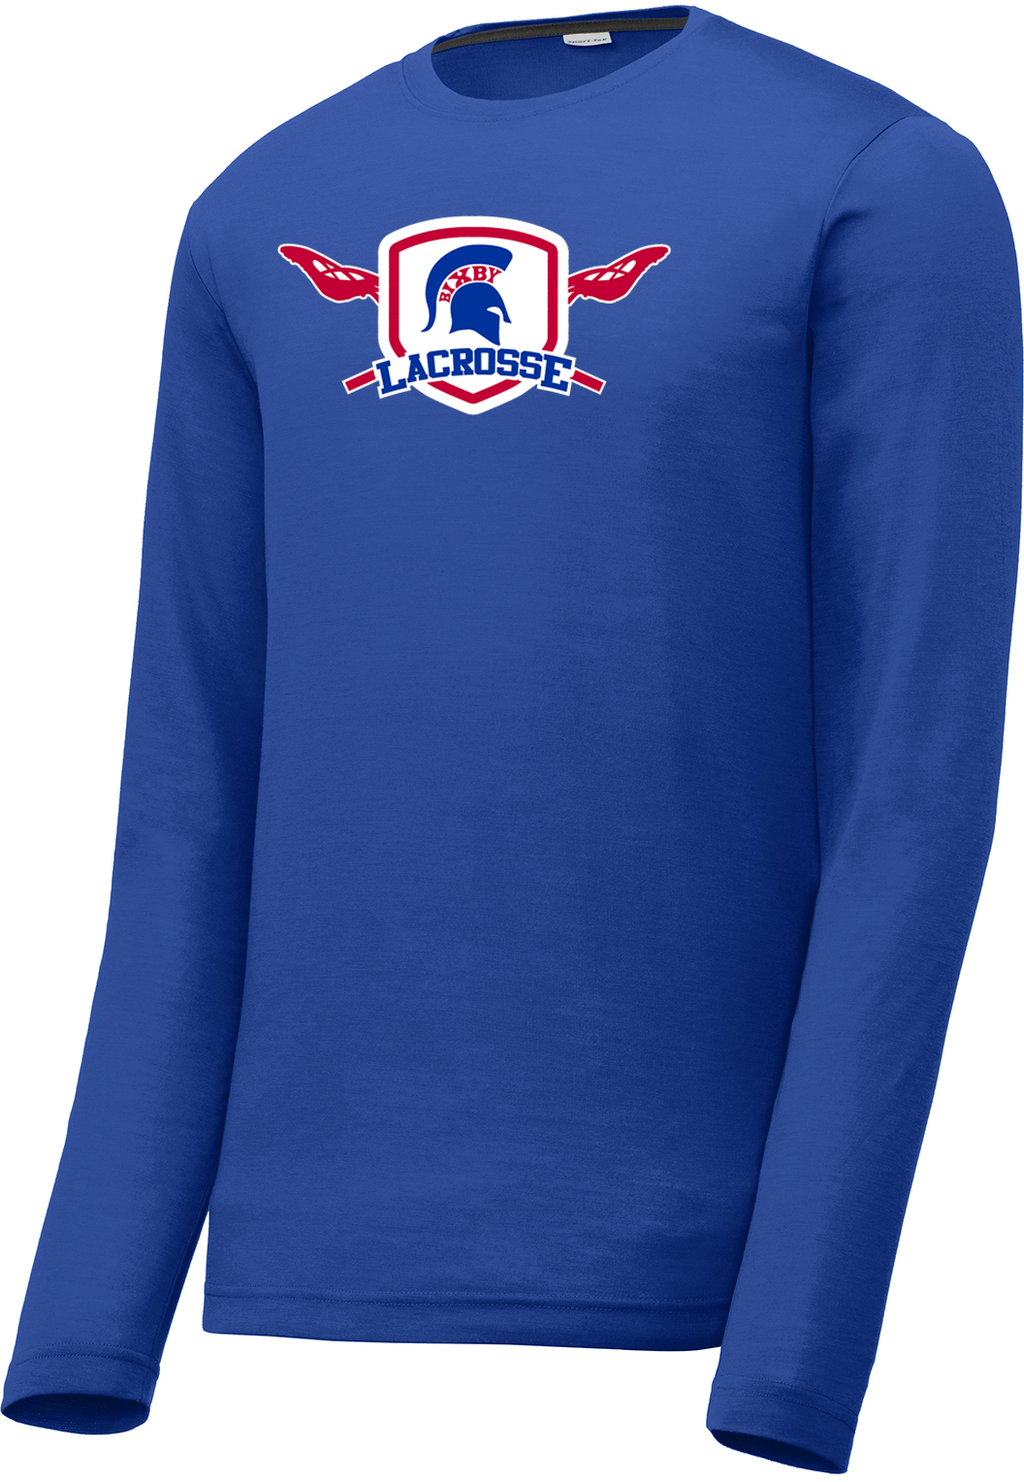 Bixby Lacrosse Royal Blue Long Sleeve CottonTouch Performance Shirt